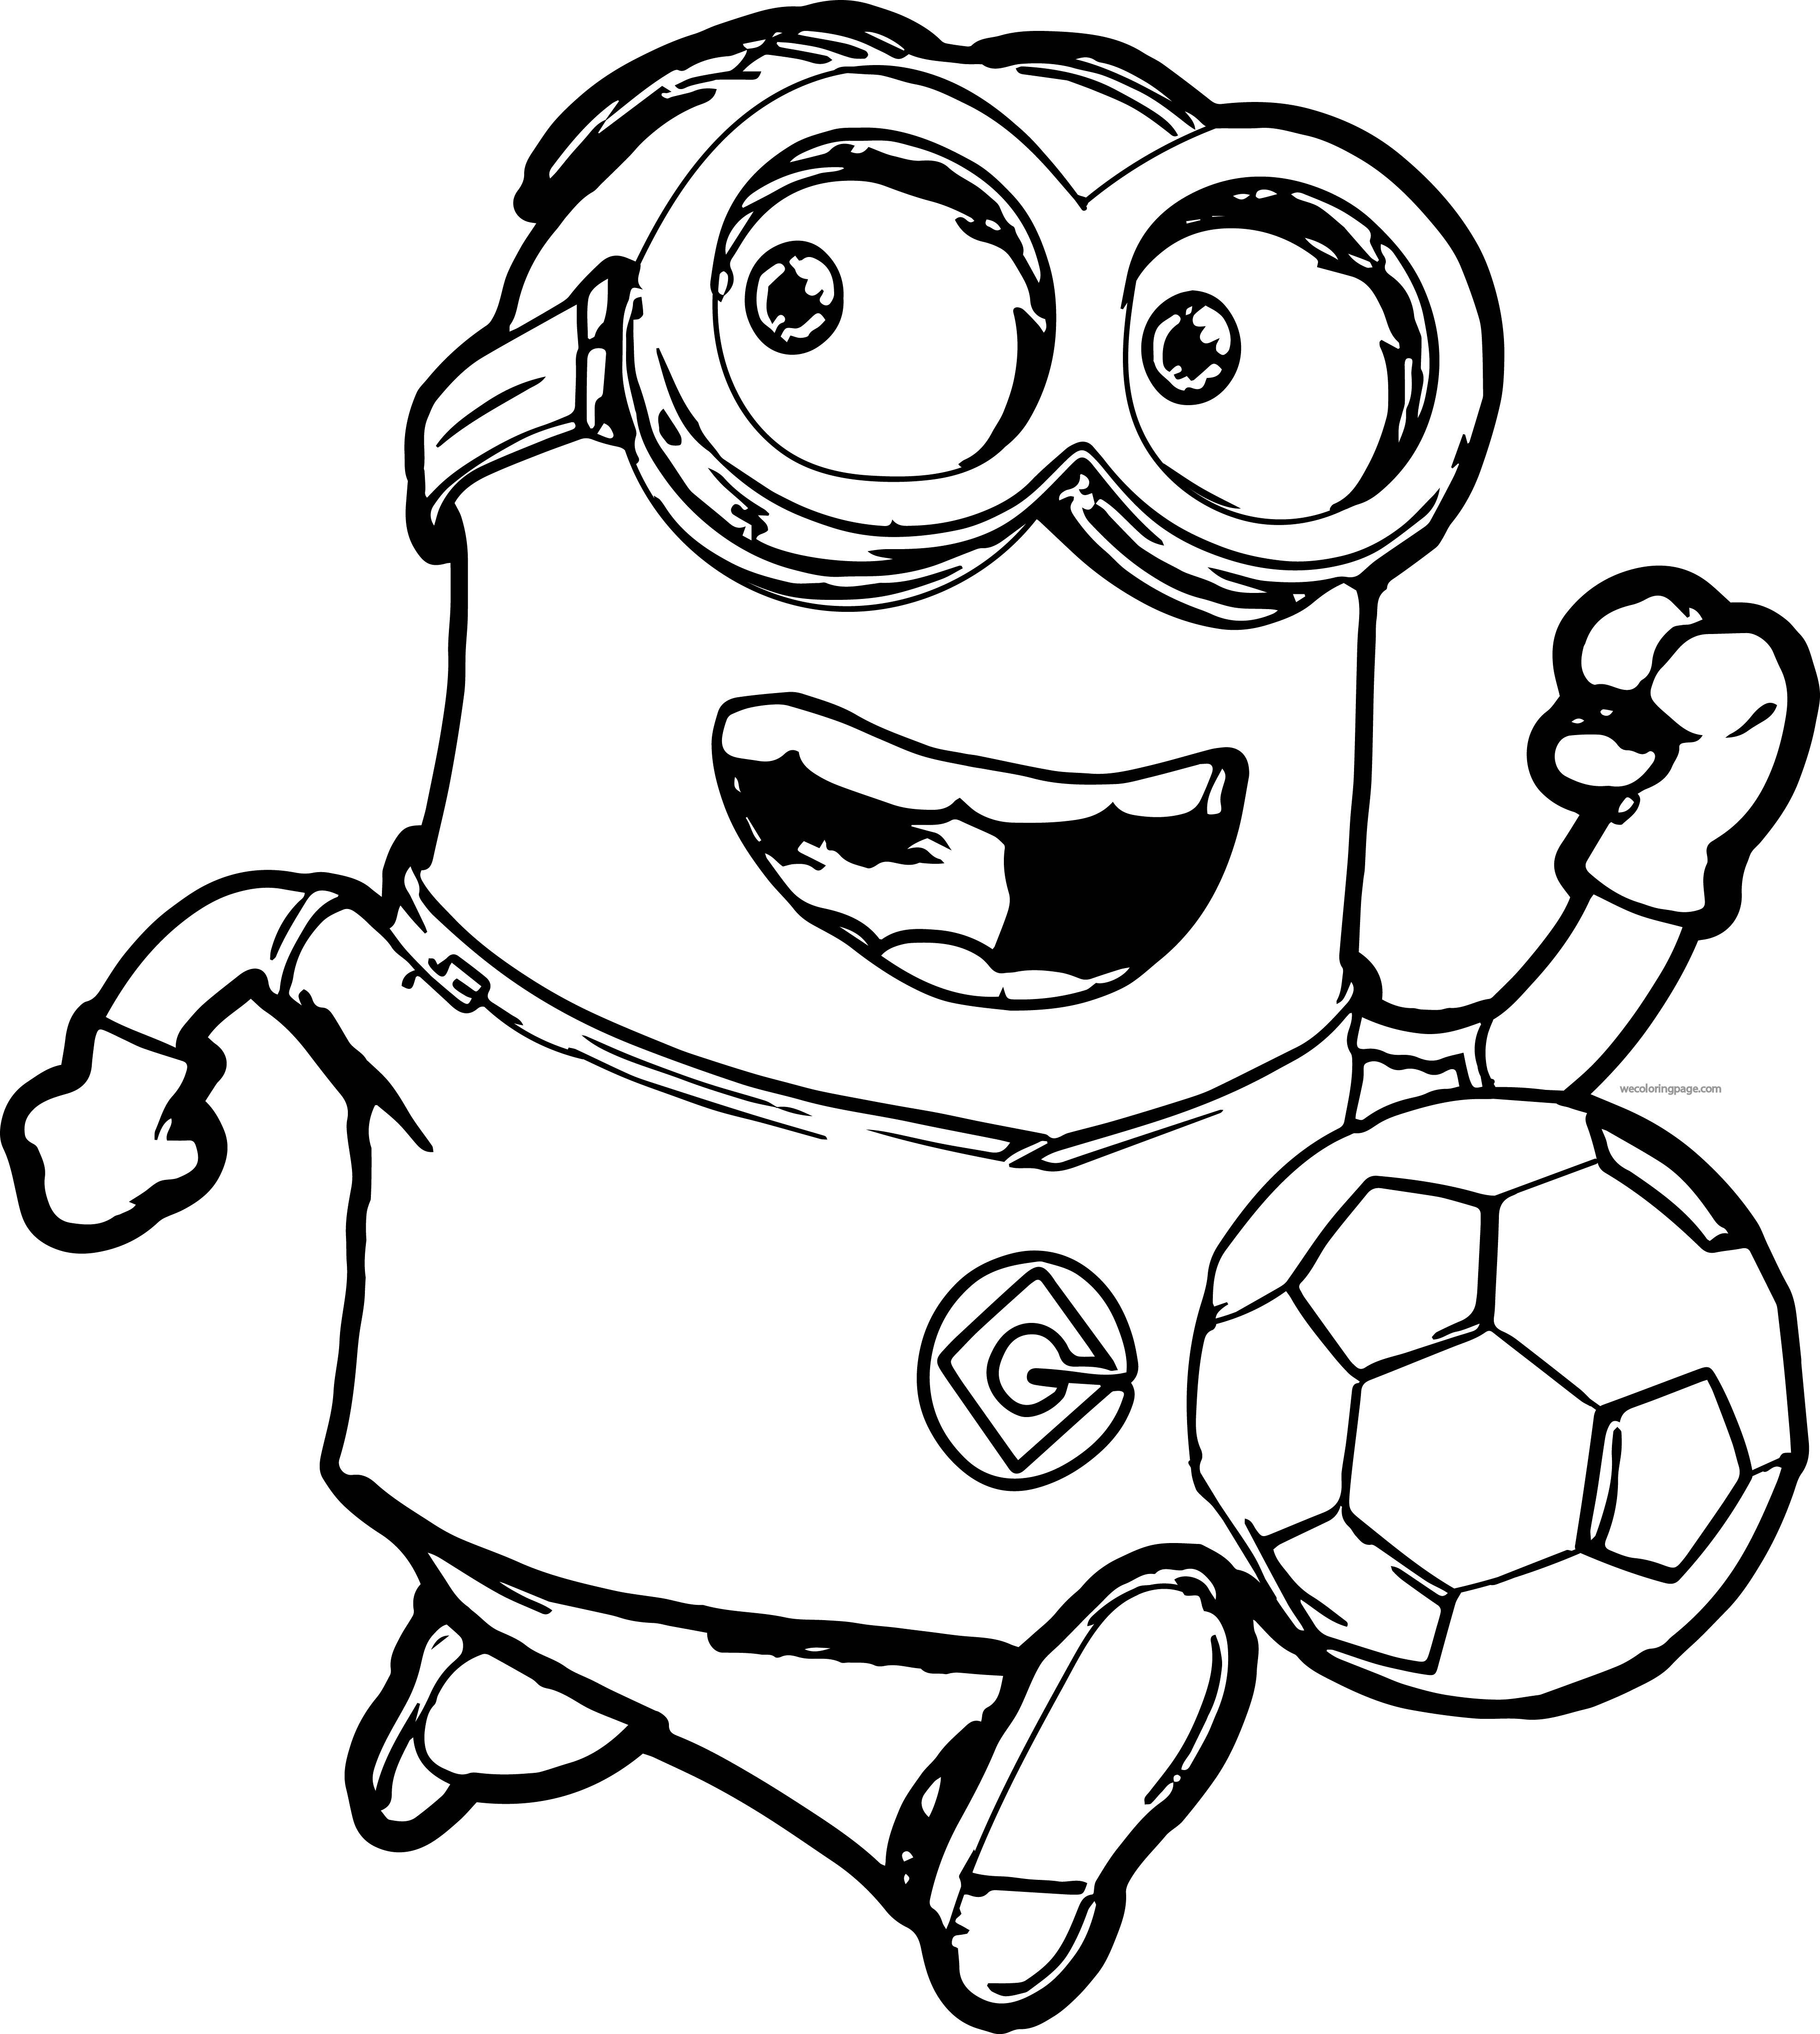 Printable Coloring Pages For Kids In 2020 Minion Coloring Pages Minions Coloring Pages Sports Coloring Pages